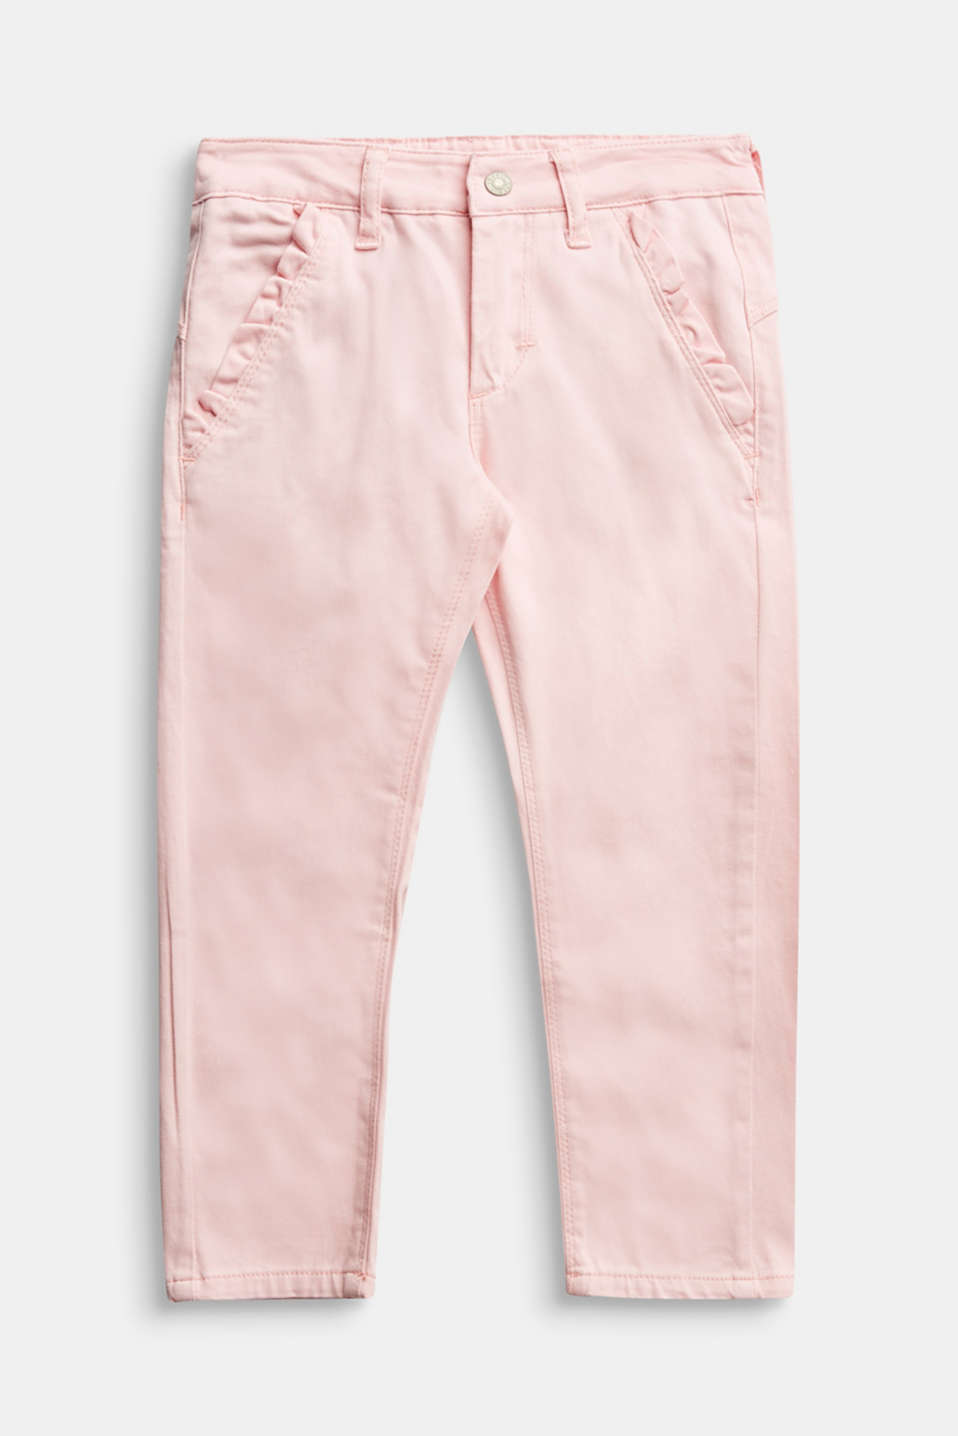 Esprit - Pantalon en coton stretch